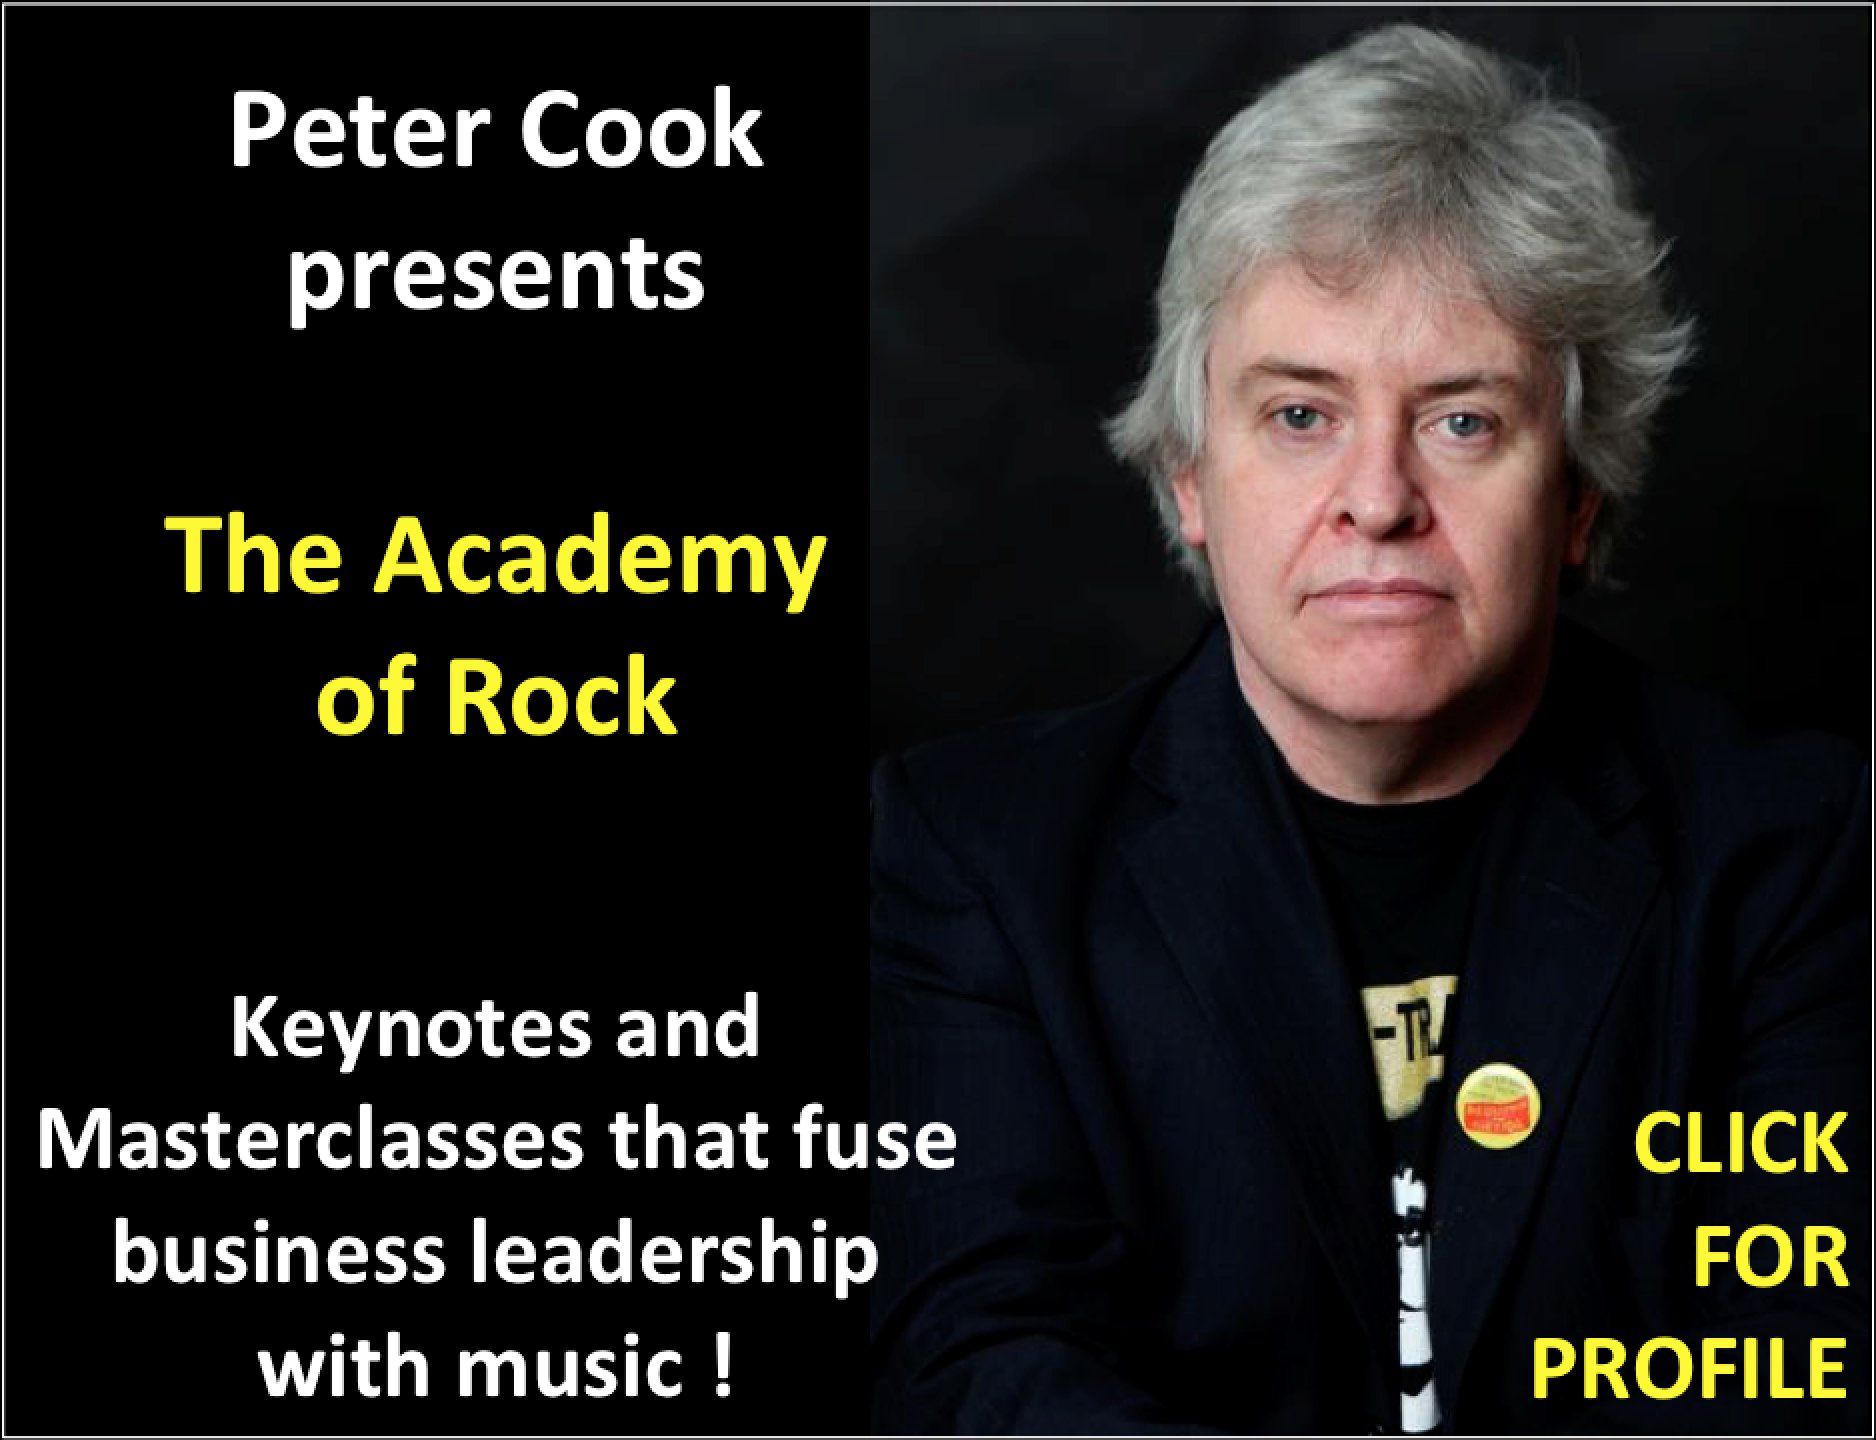 Peter Cook's Profile